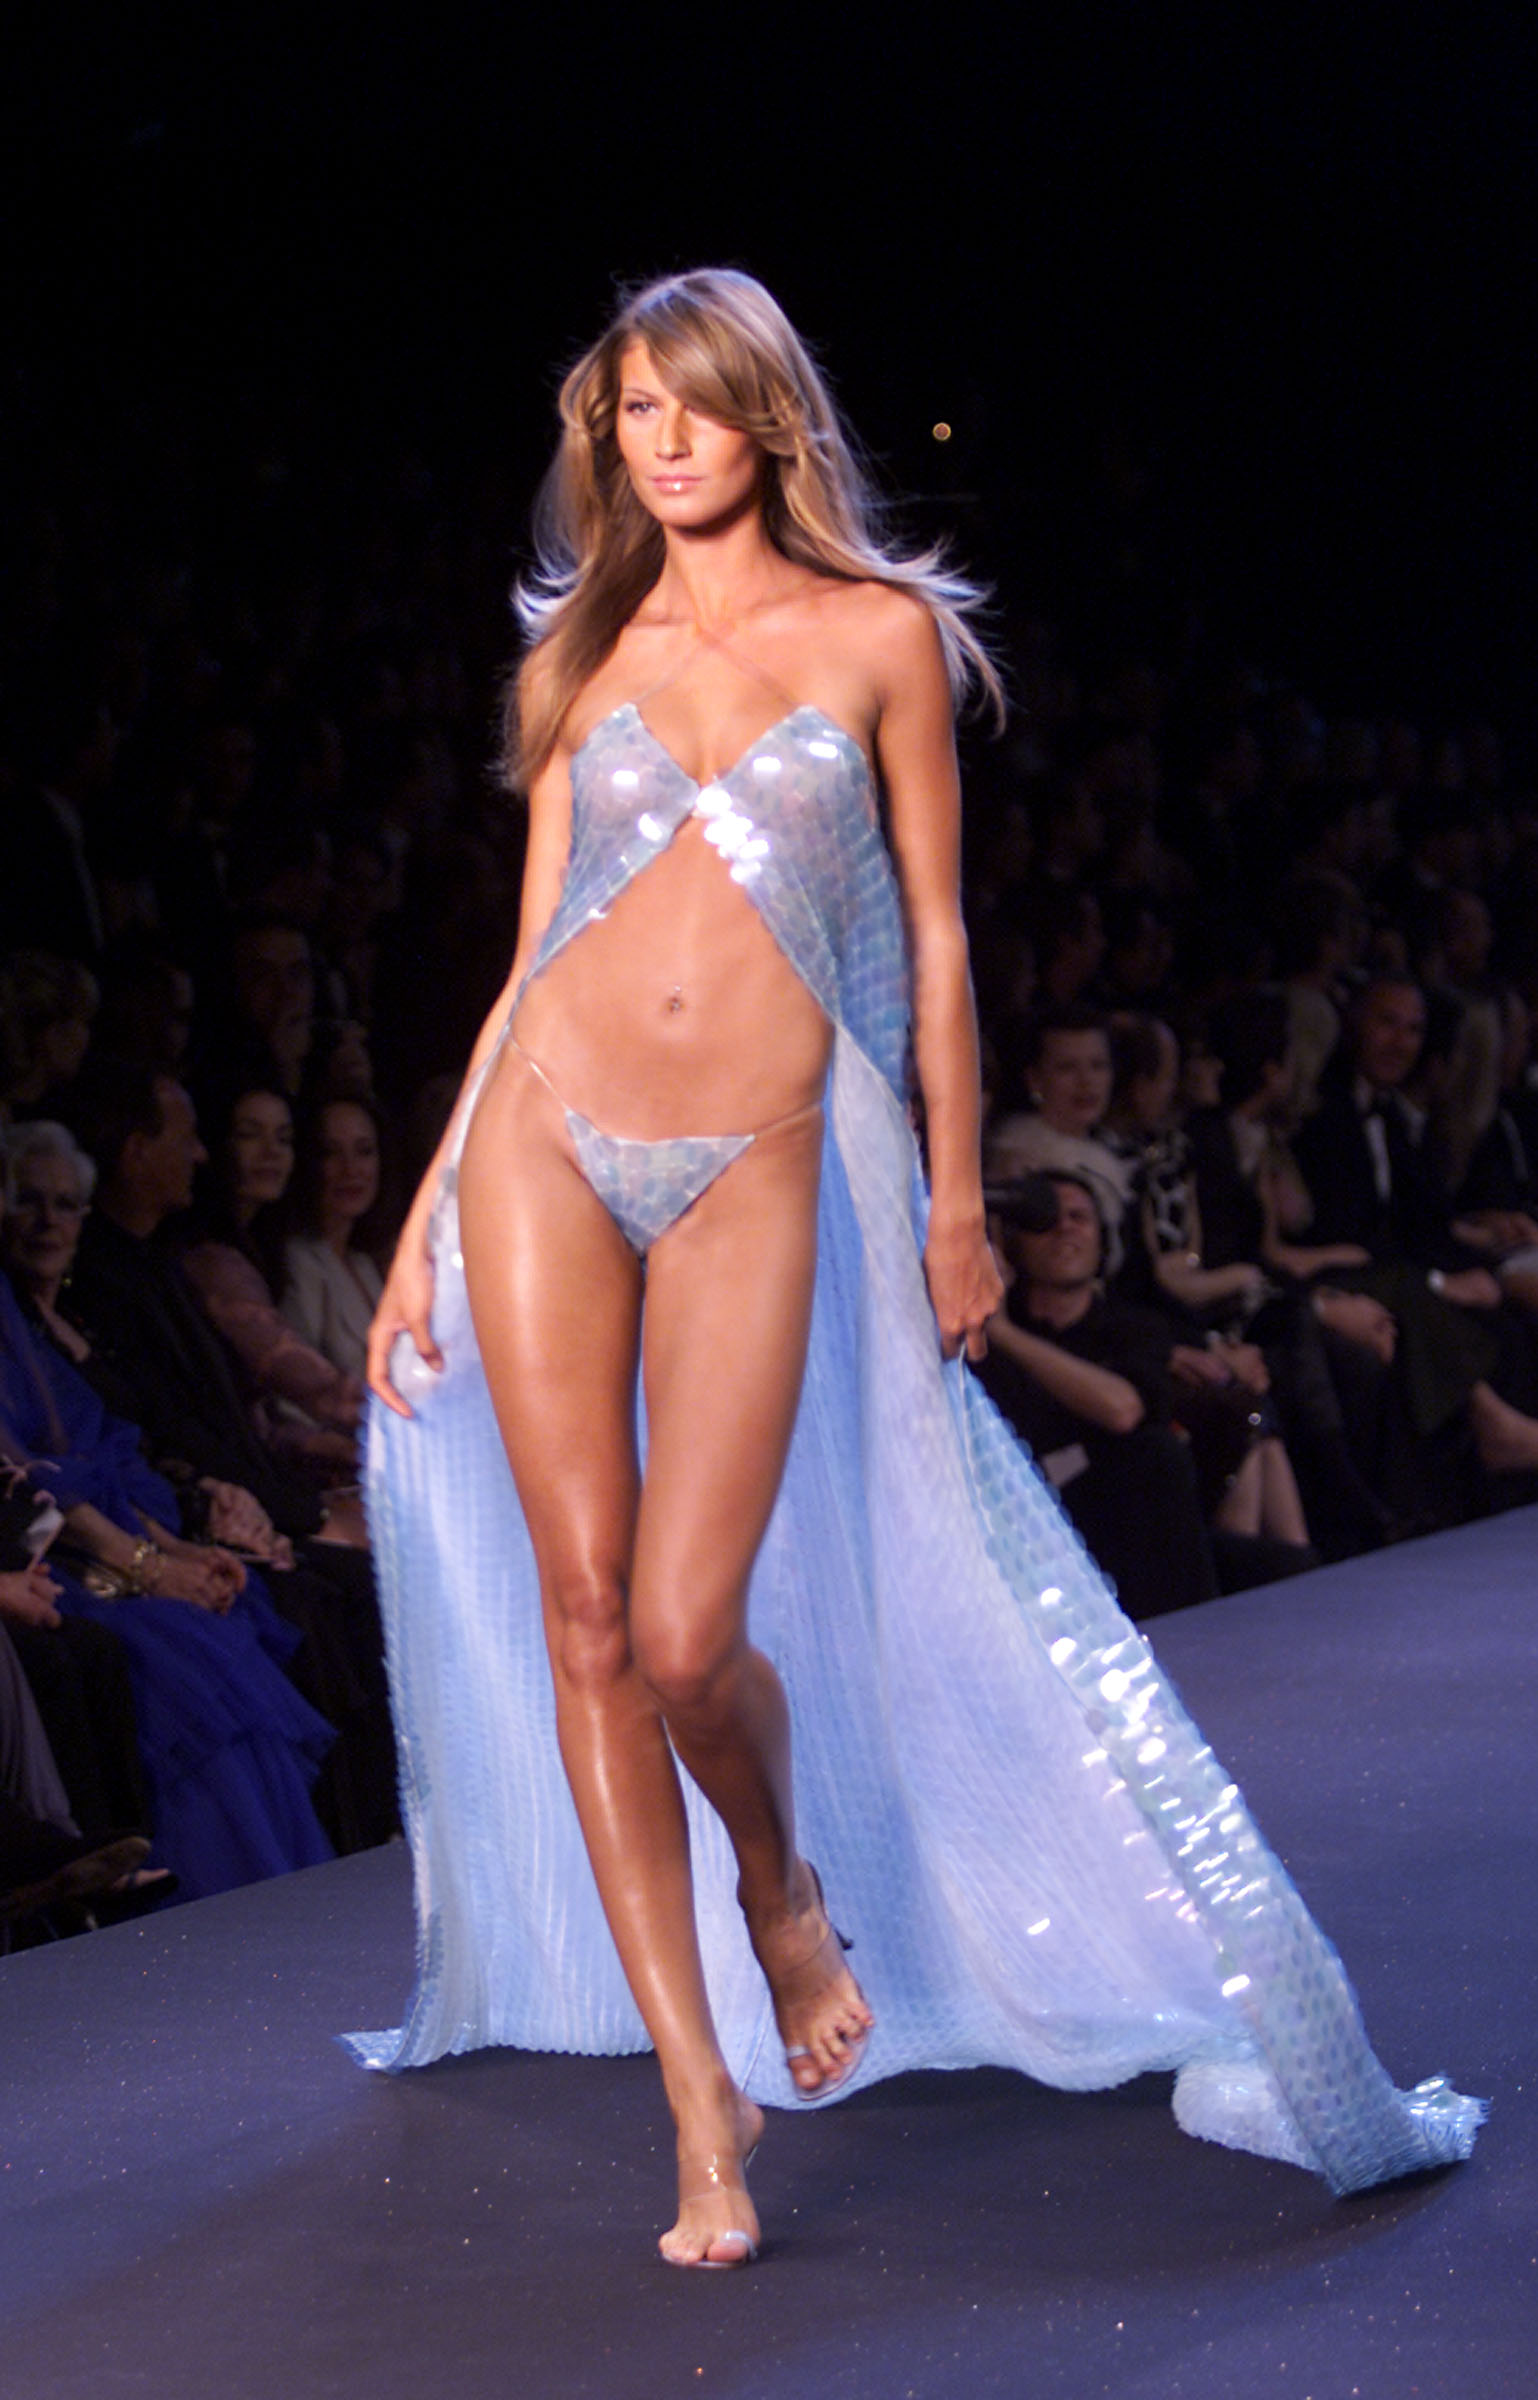 Model Gisele Bundchen on the runway at the Victoria's Secret Fashion Show at the amfAR/Cinema Against Aids 2000 benefit at the Cannes Film Festival, 5/18/00.Photo by Frank Micelotta/ImageDirect